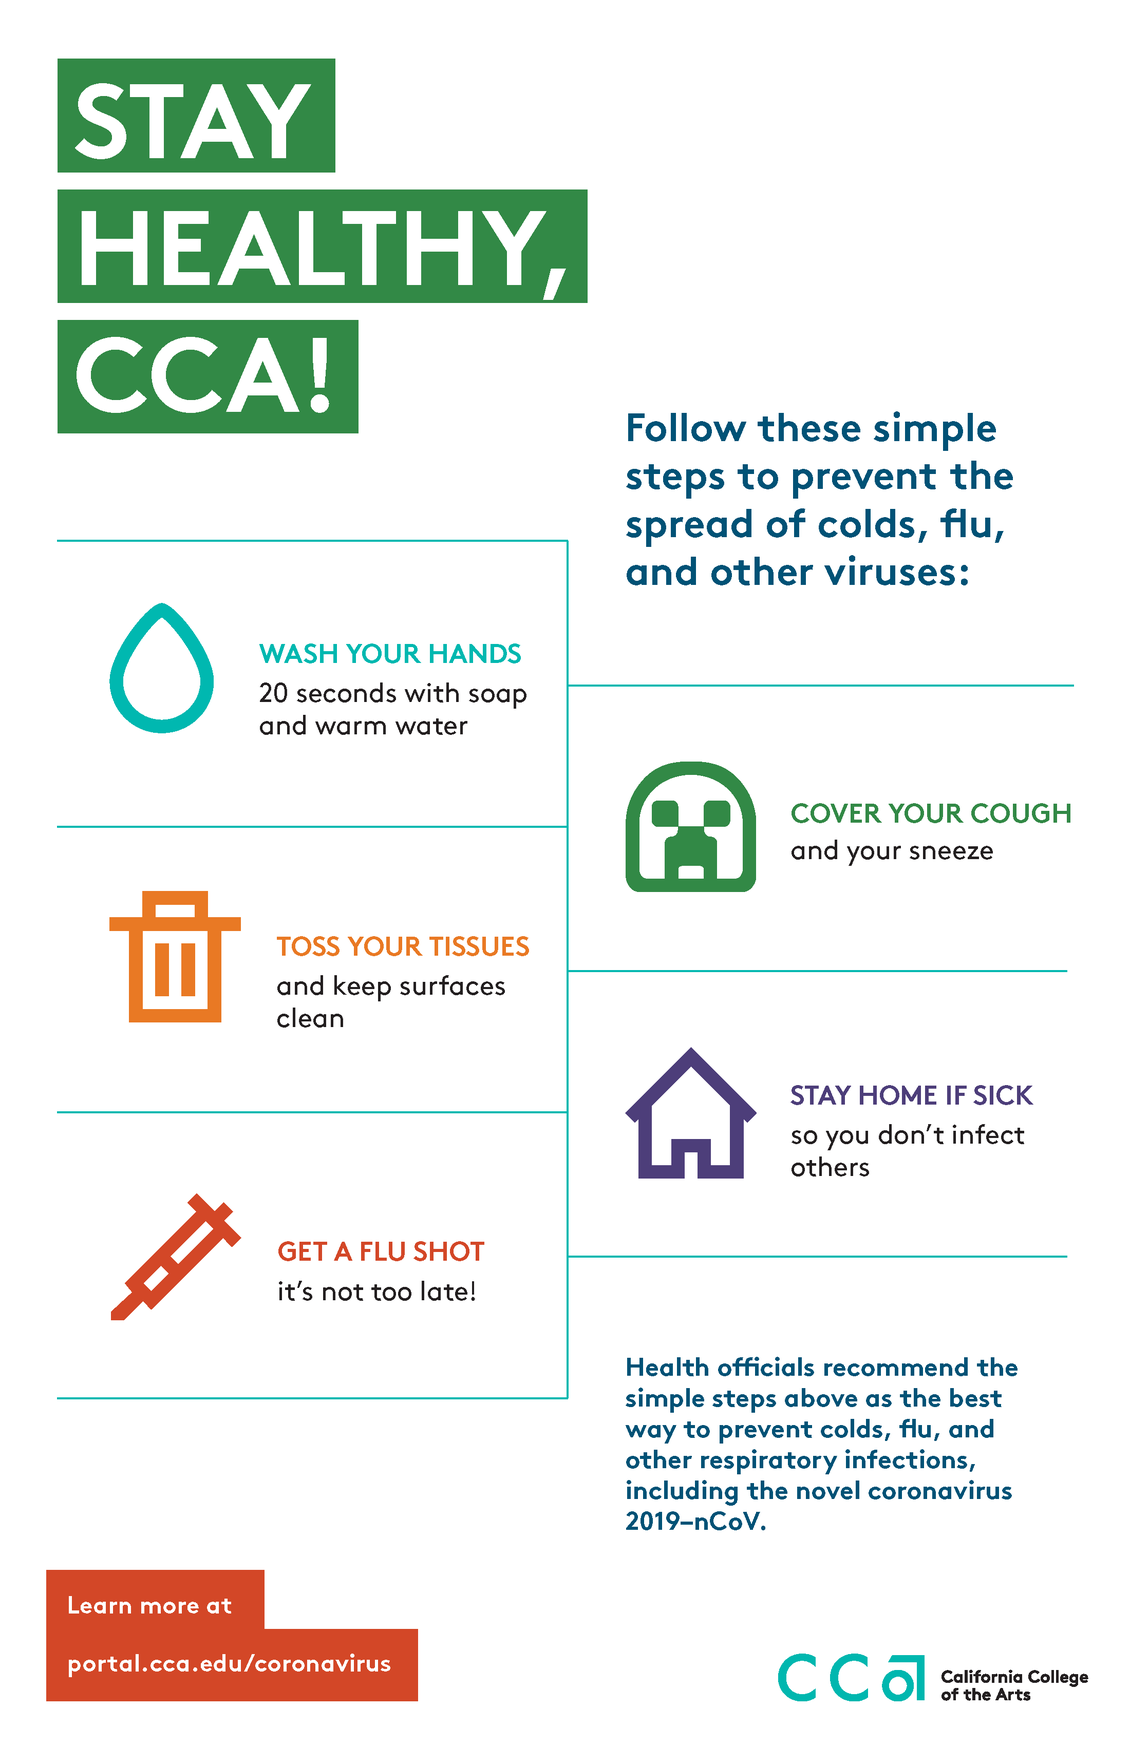 Stay Healthy, CCA! Simple Steps to Prevent the Spread of Illness